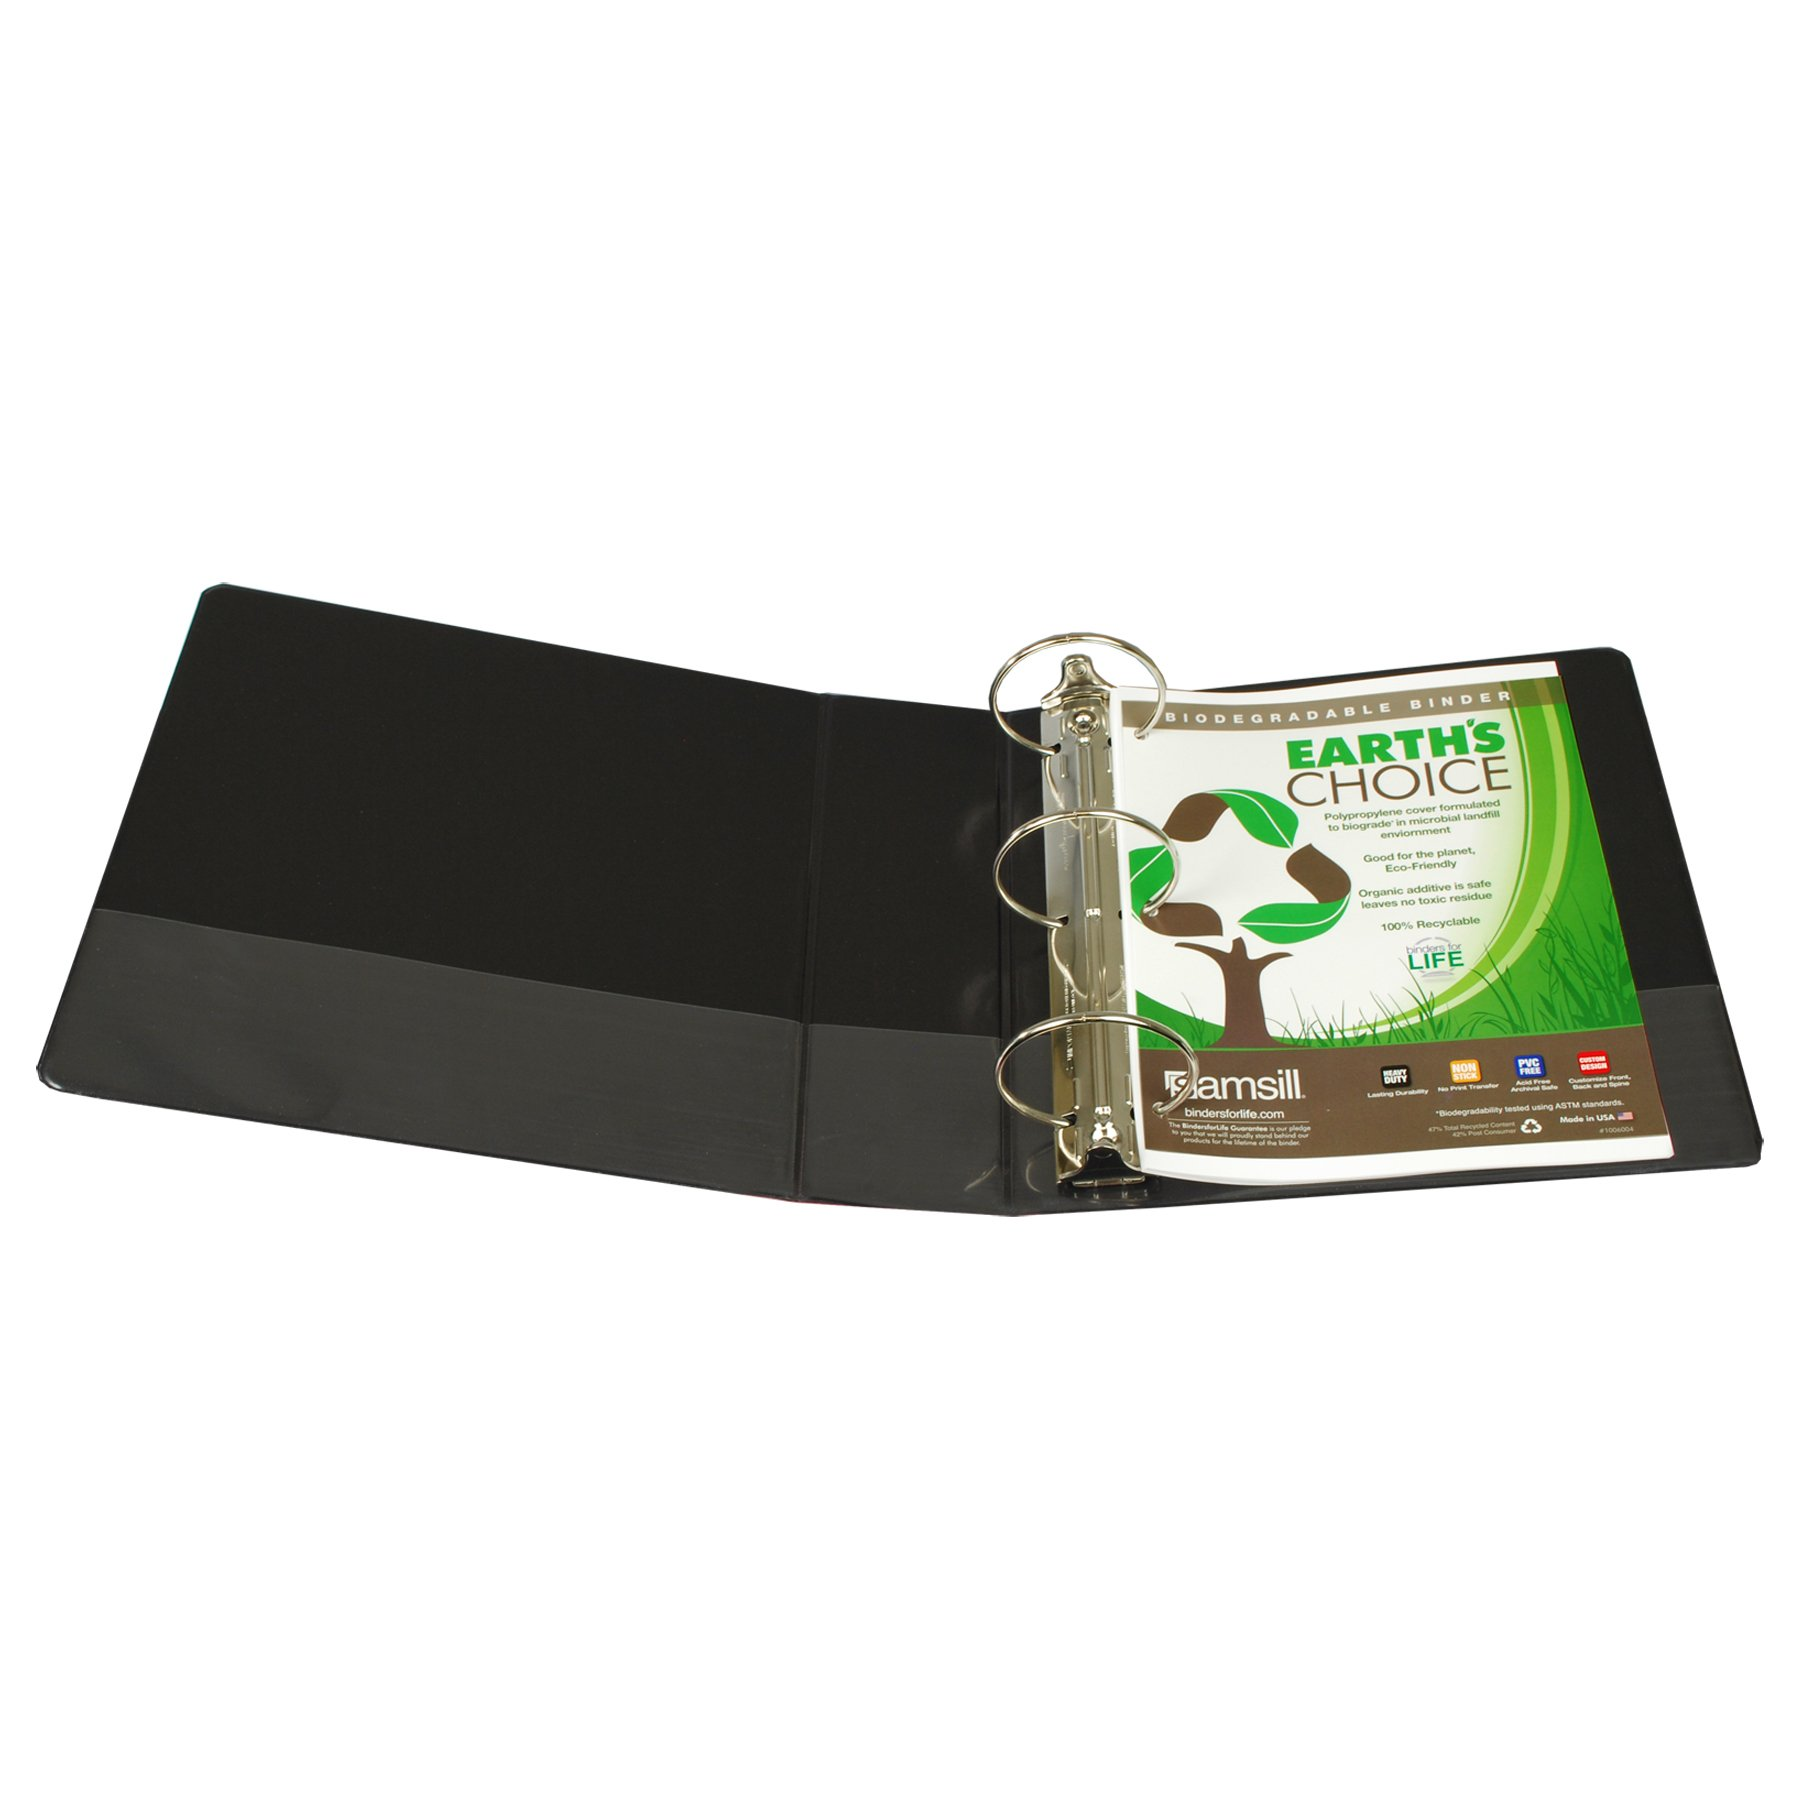 Samsill Earth's Choice Biobased View Binder, 3 Ring Binder, 4 Inch, Round Ring, Customizable, Black by Samsill (Image #2)